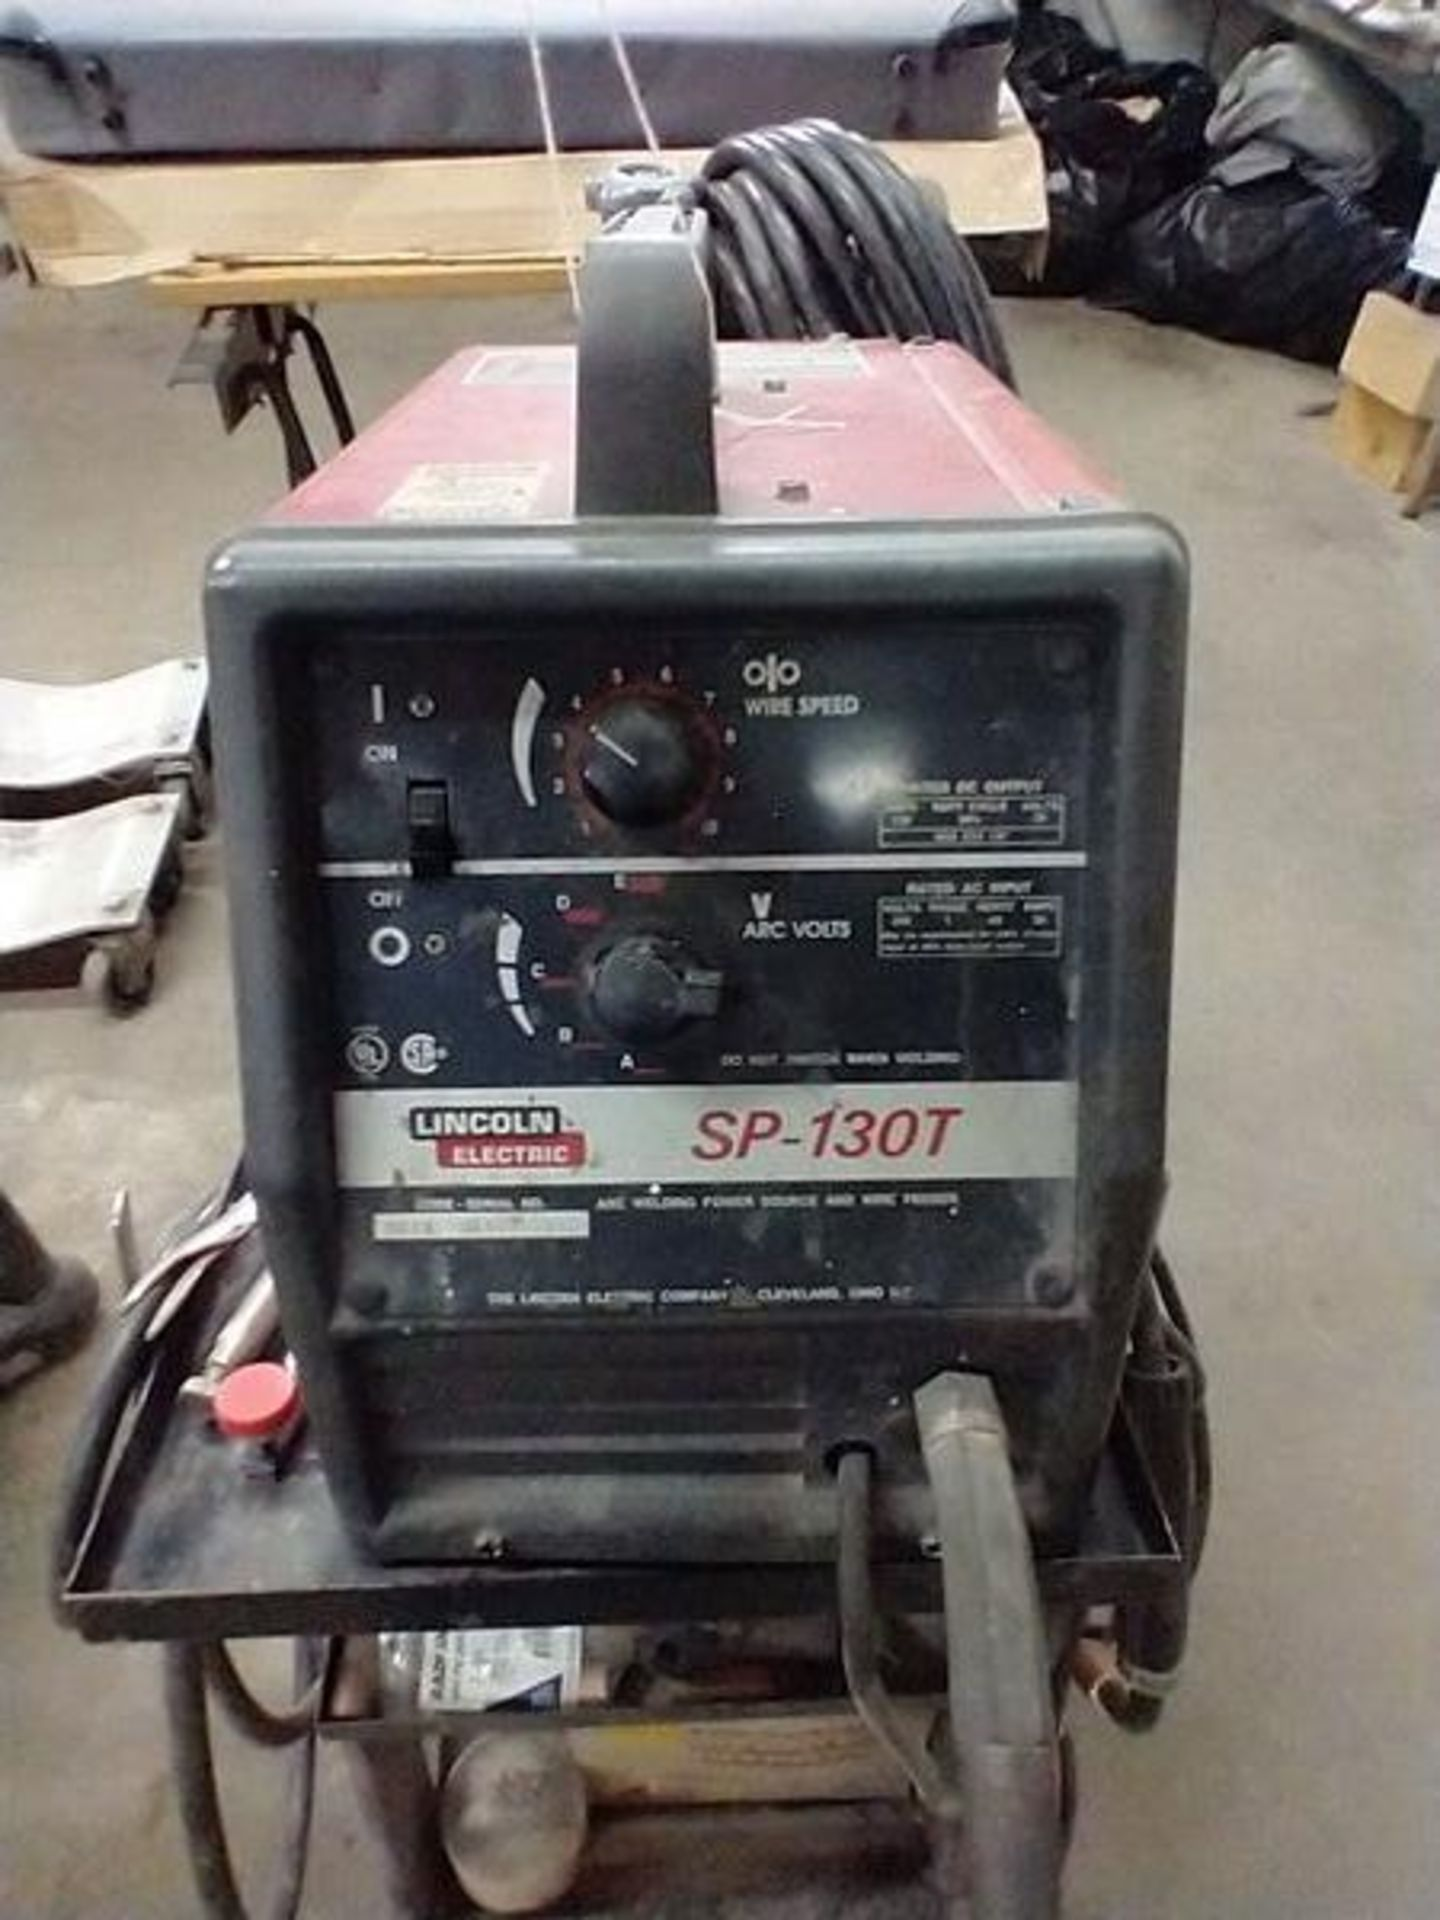 LINCOLN ARC WELDER SP-130T WITH CART AND CONTENTS